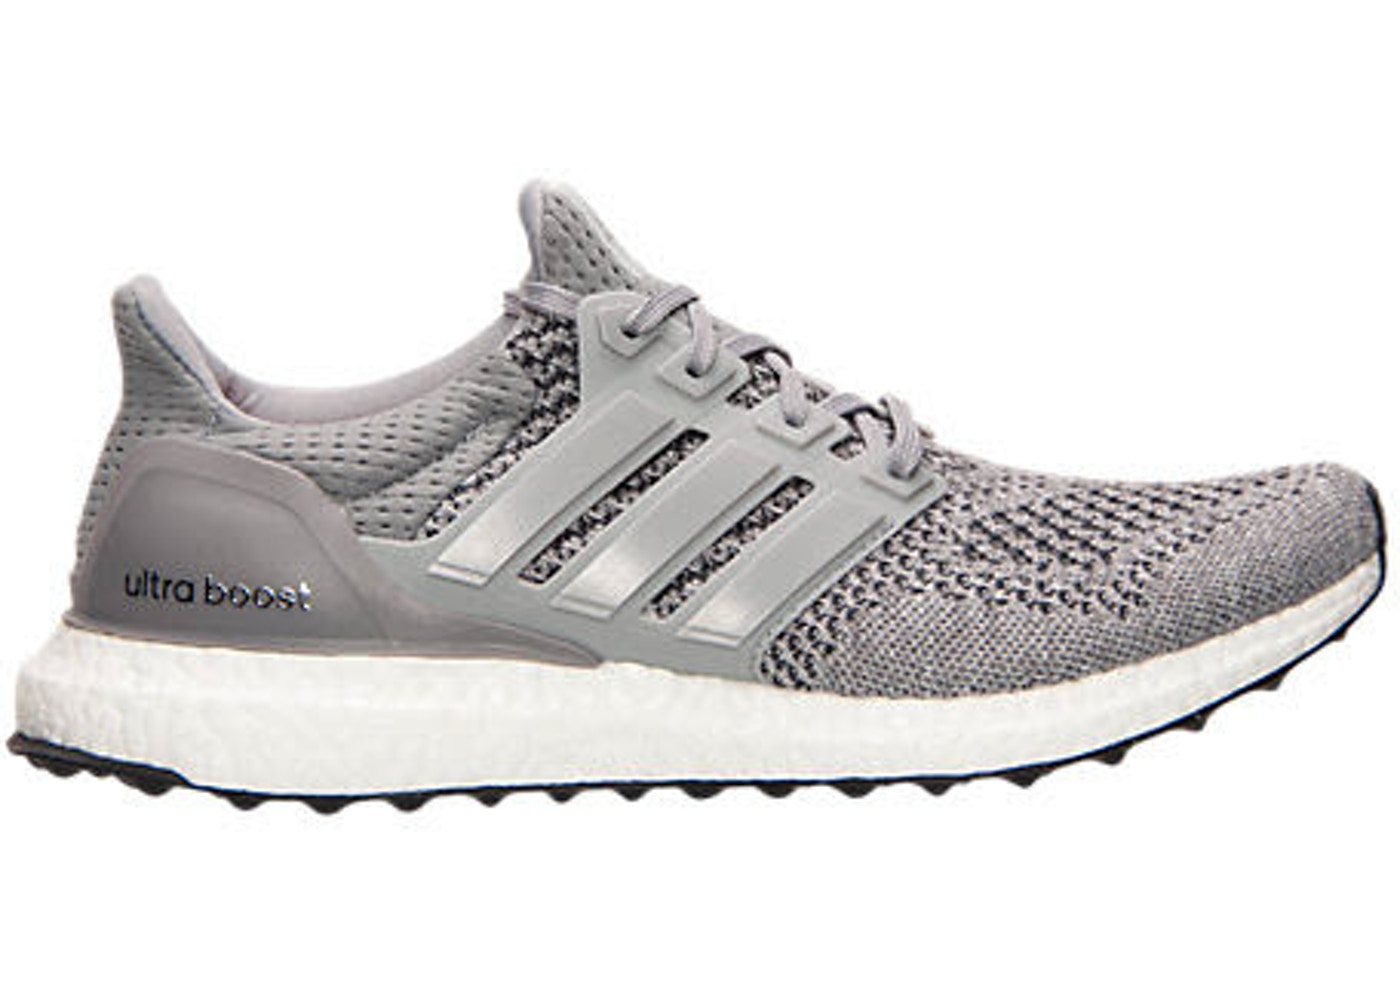 87c173c7eef adidas Ultra Boost Size 10 Shoes - Average Sale Price